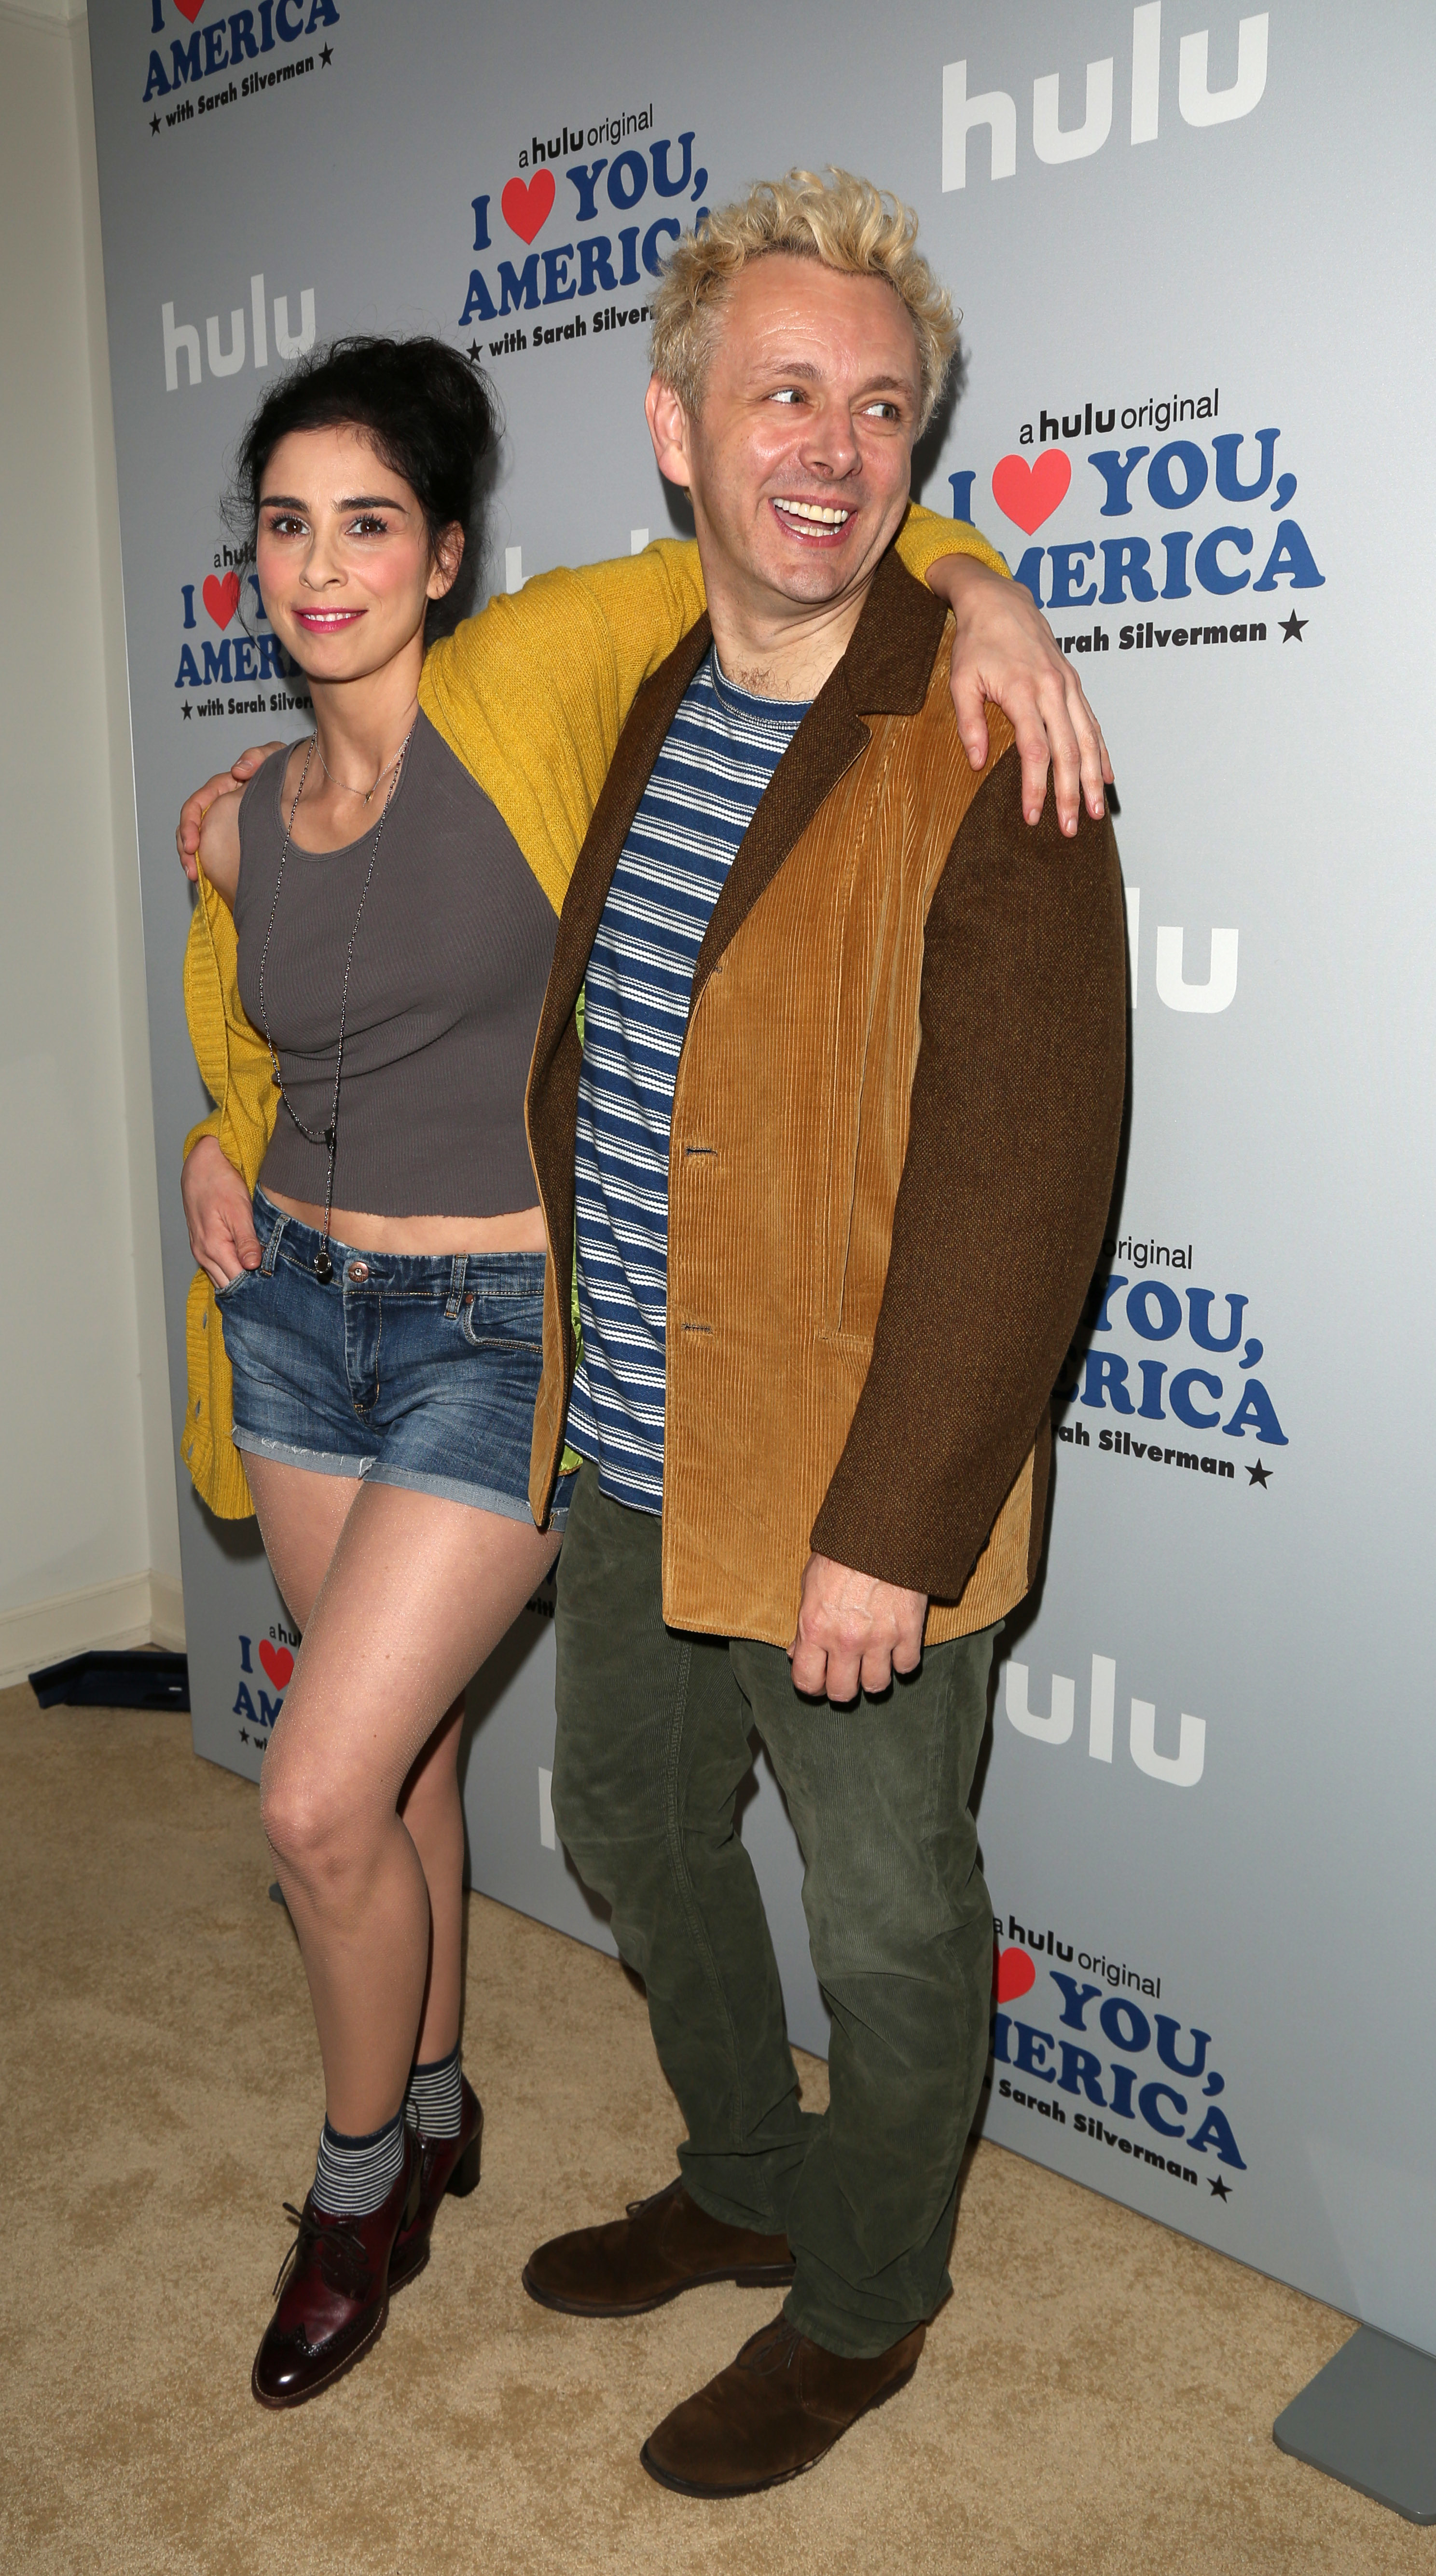 """Sarah Silverman and Michael Sheen attend photo call for Hulu's """"I Love You, America"""" at the Chateau Marmont in West Hollywood on Oct. 11, 2017."""